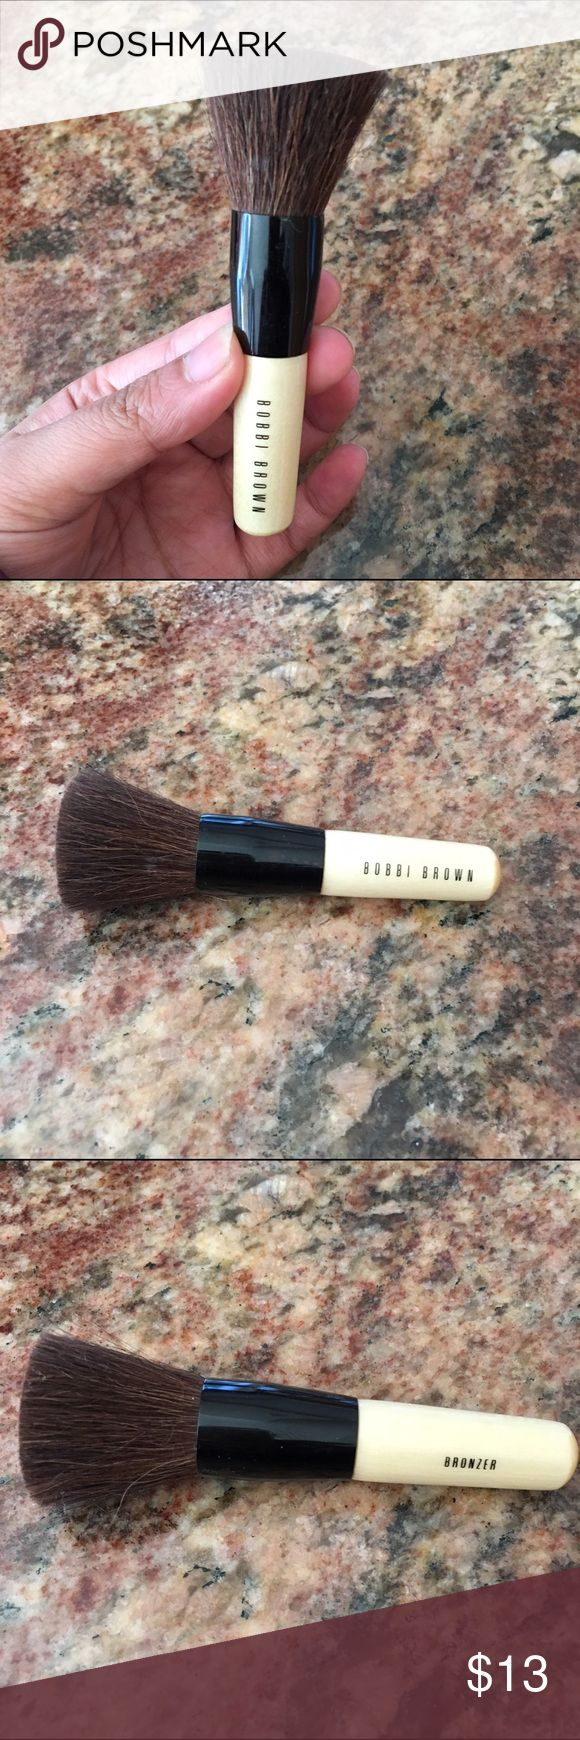 Bobbi Brown mini bronzer brush Barely used, works great with the bronzer I have listed. No trades, reasonable offers only Bobbi Brown Makeup Brushes & Tools